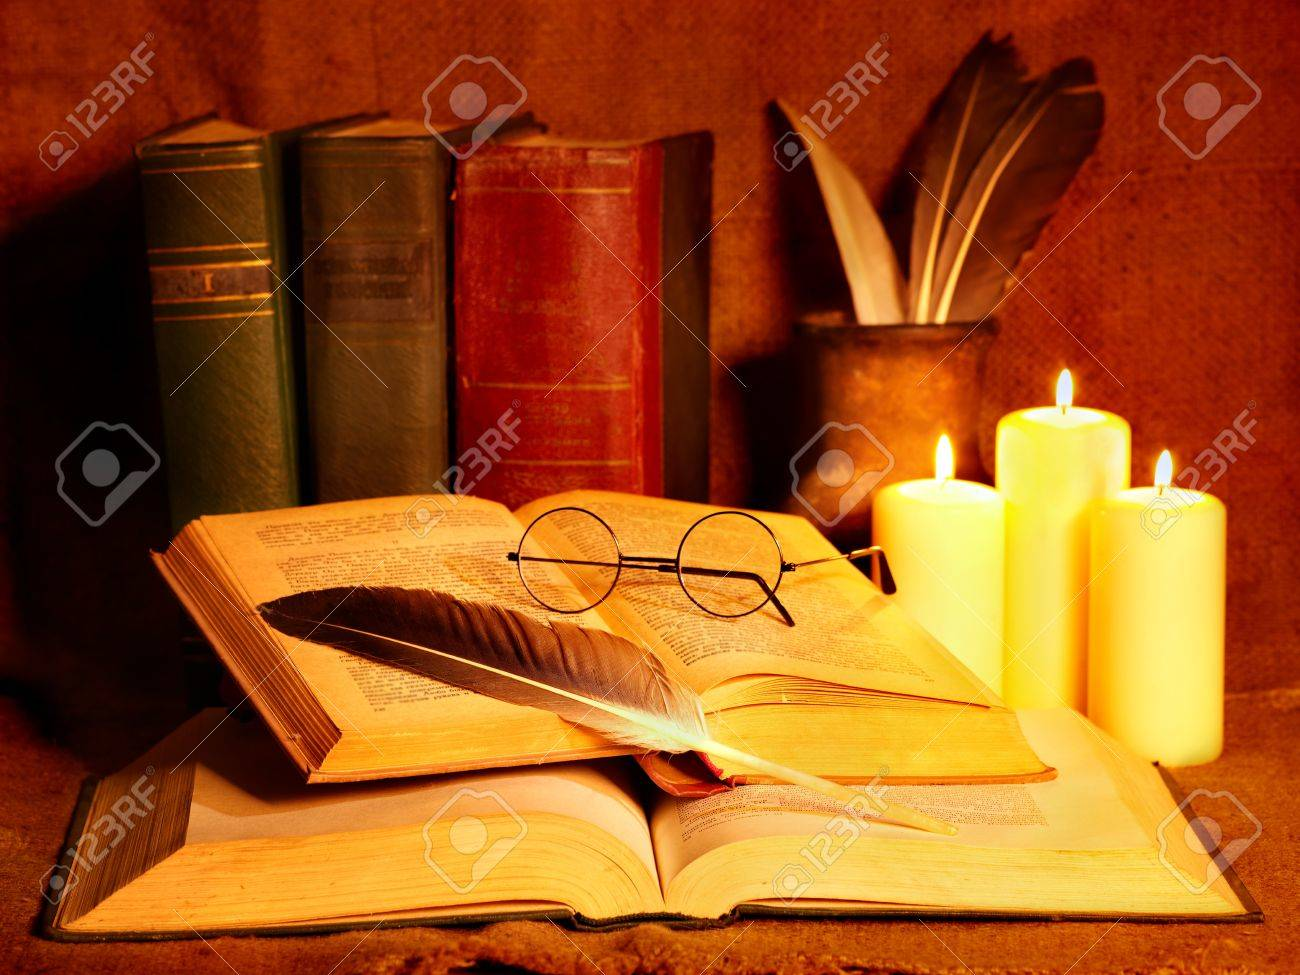 Stack old book and candle. Education. Stock Photo - 10701989